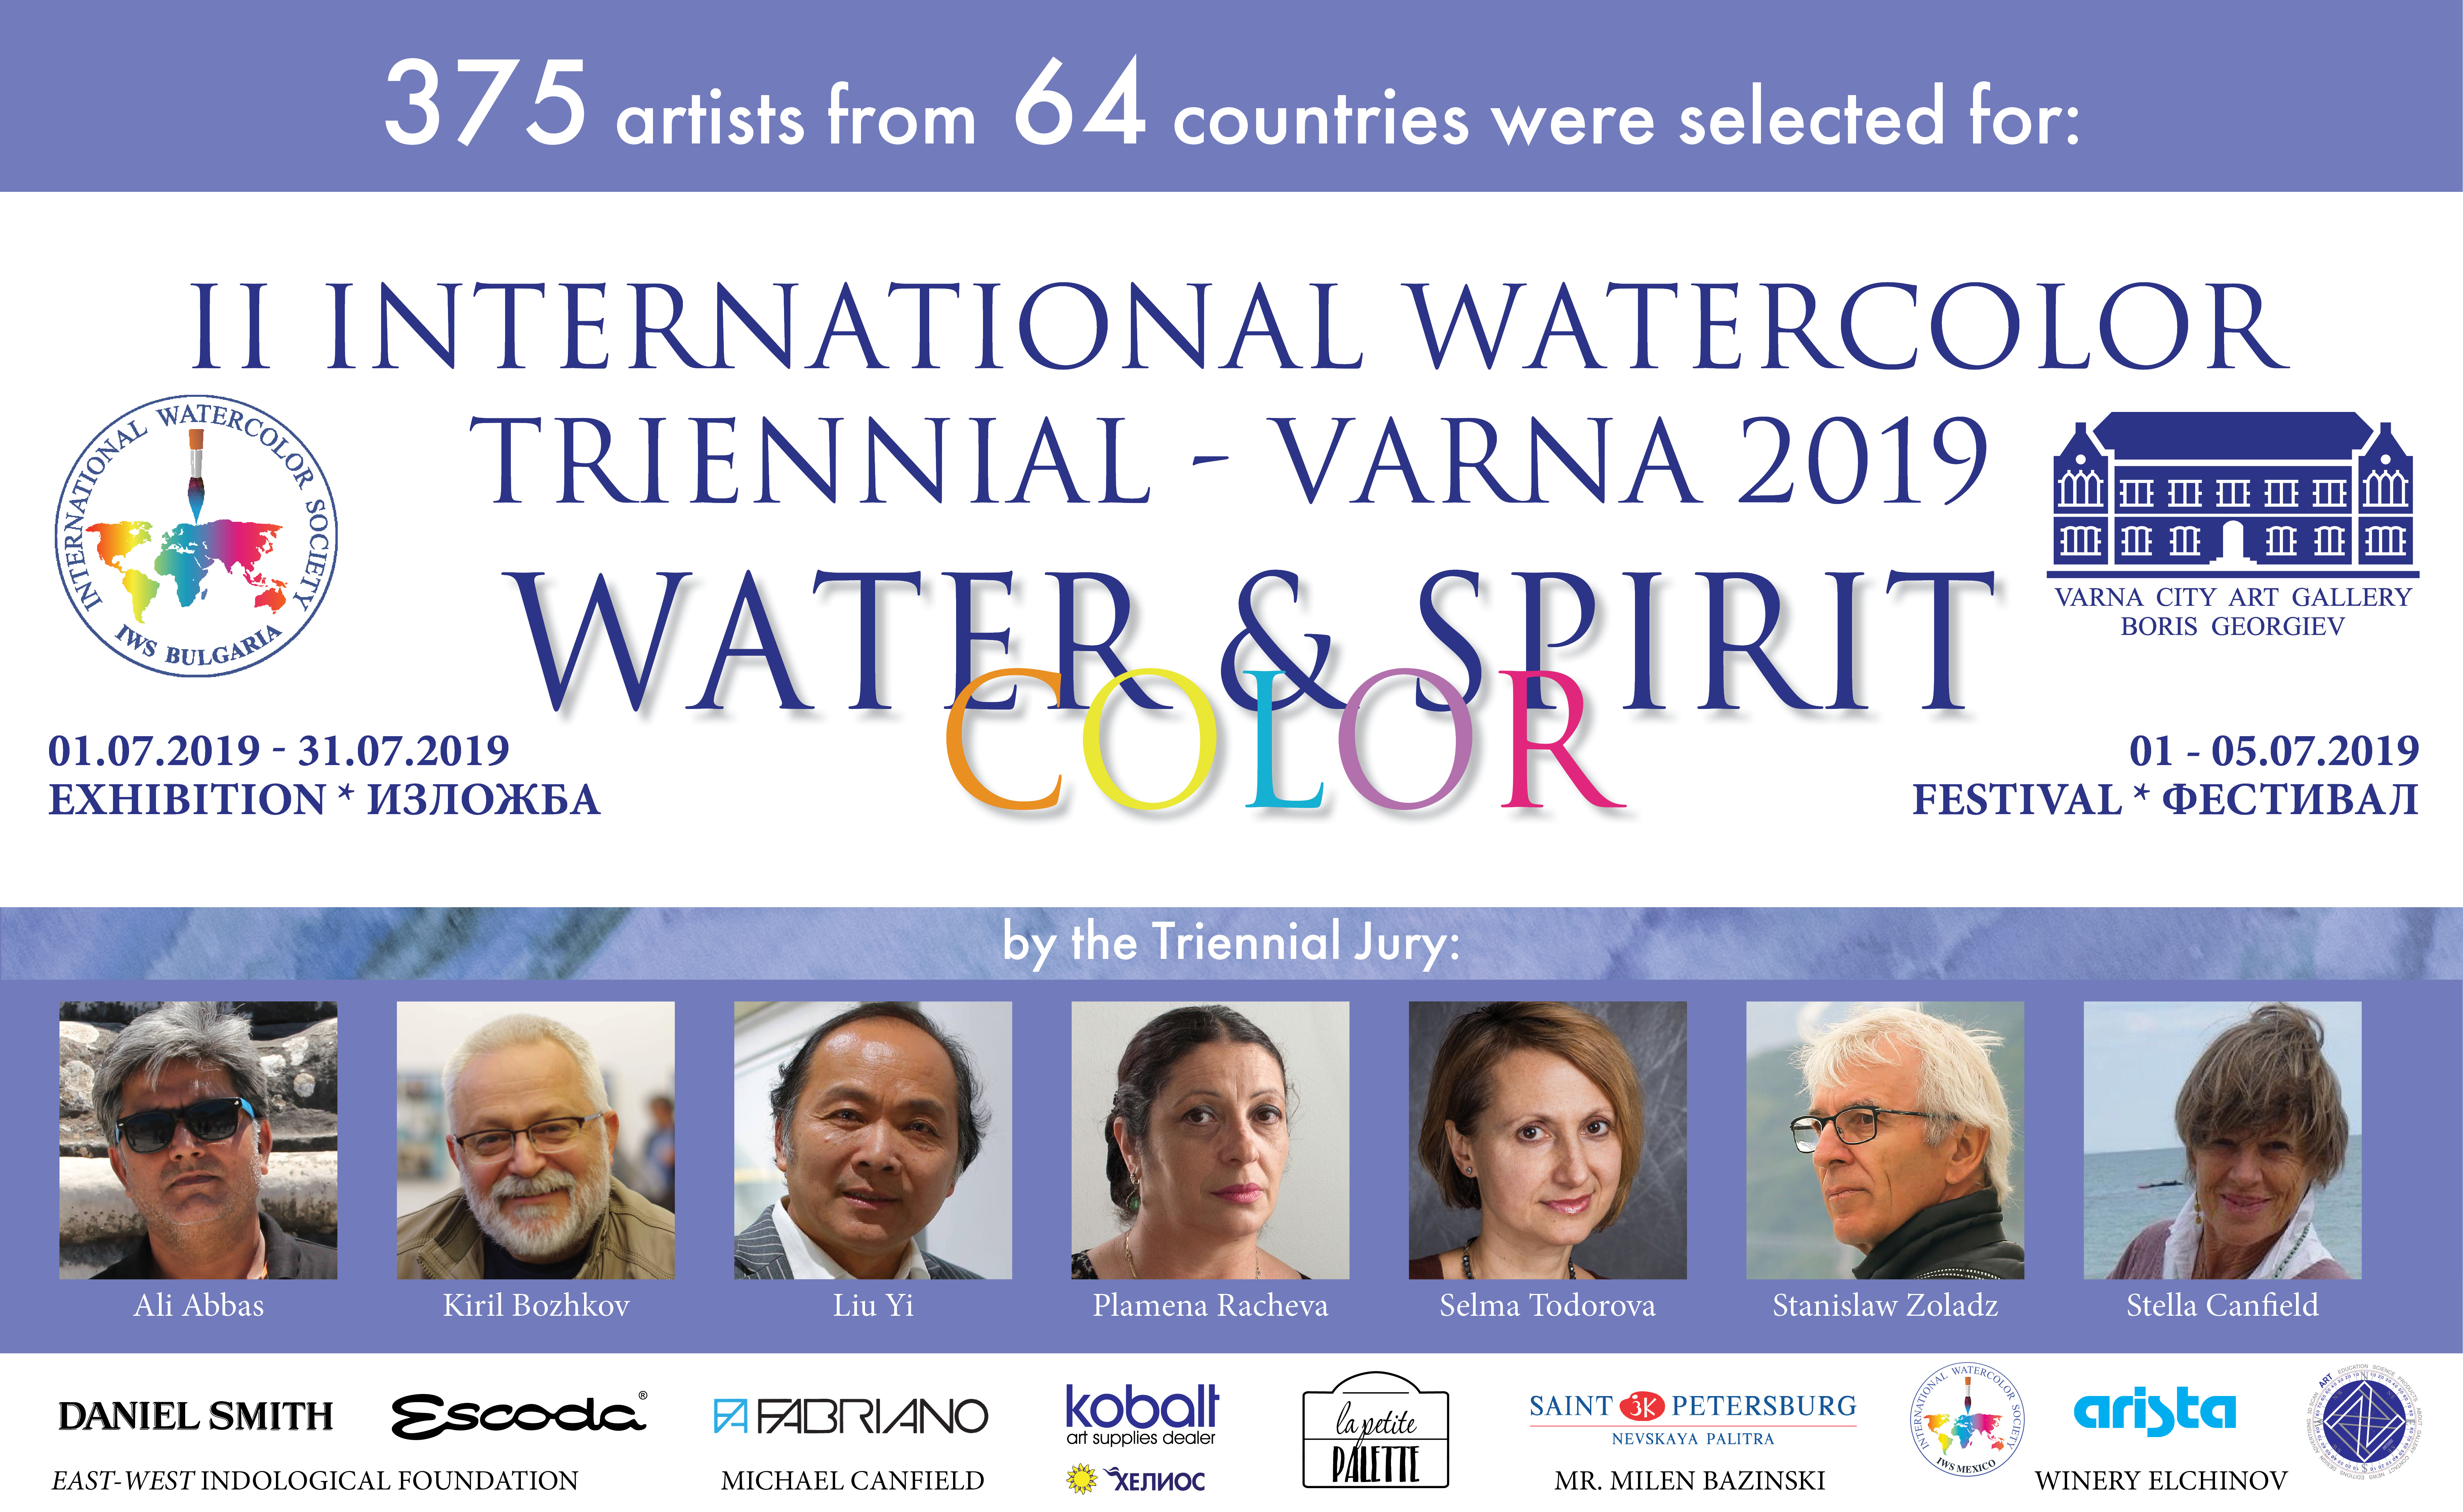 RESULTS FROM STAGE I: PRE-SELECTION FOR TRIENNIAL - VARNA